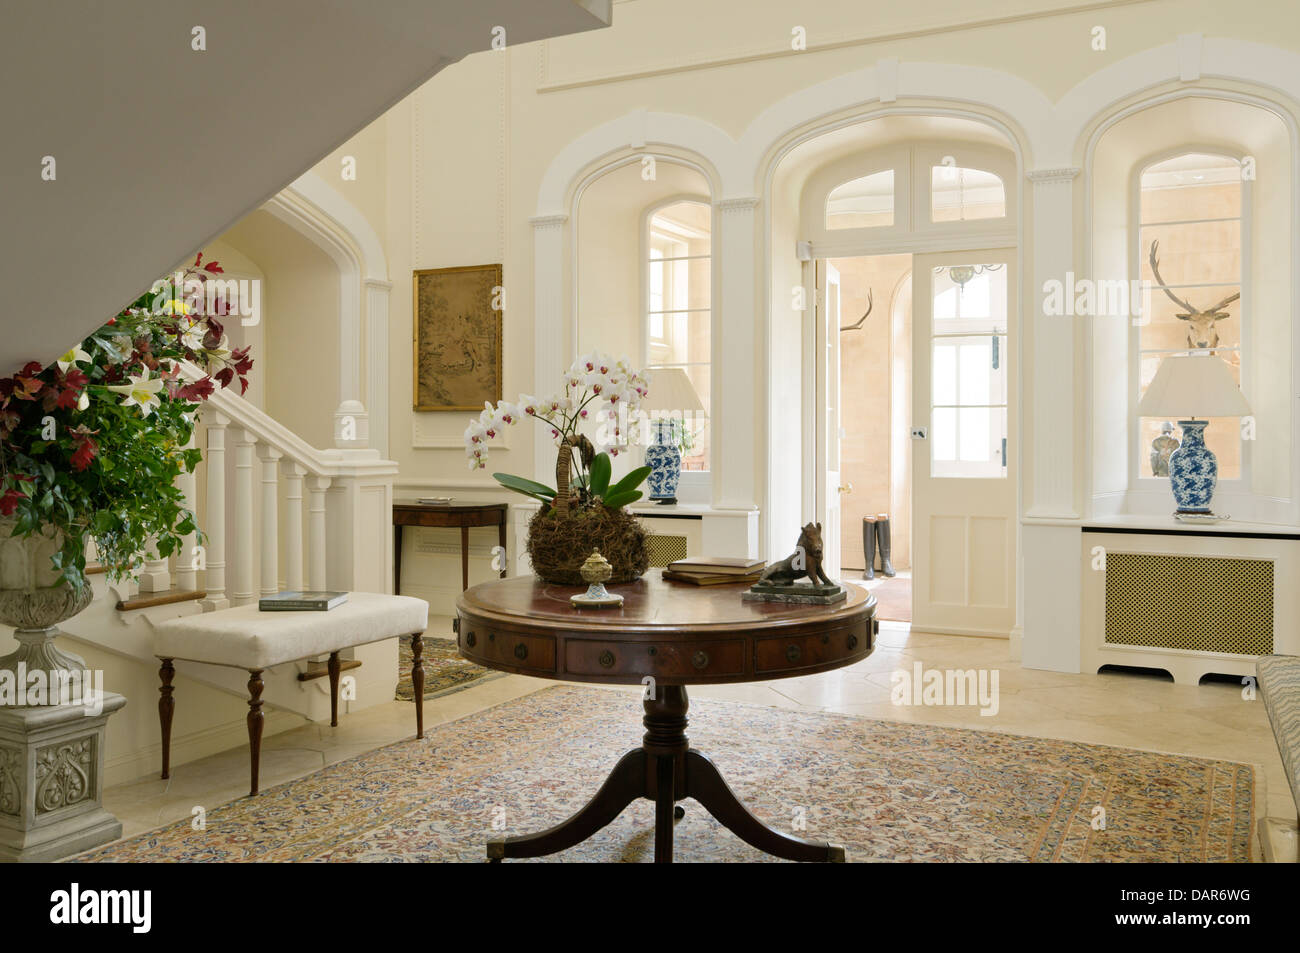 Perfect Round Hall Table And Design